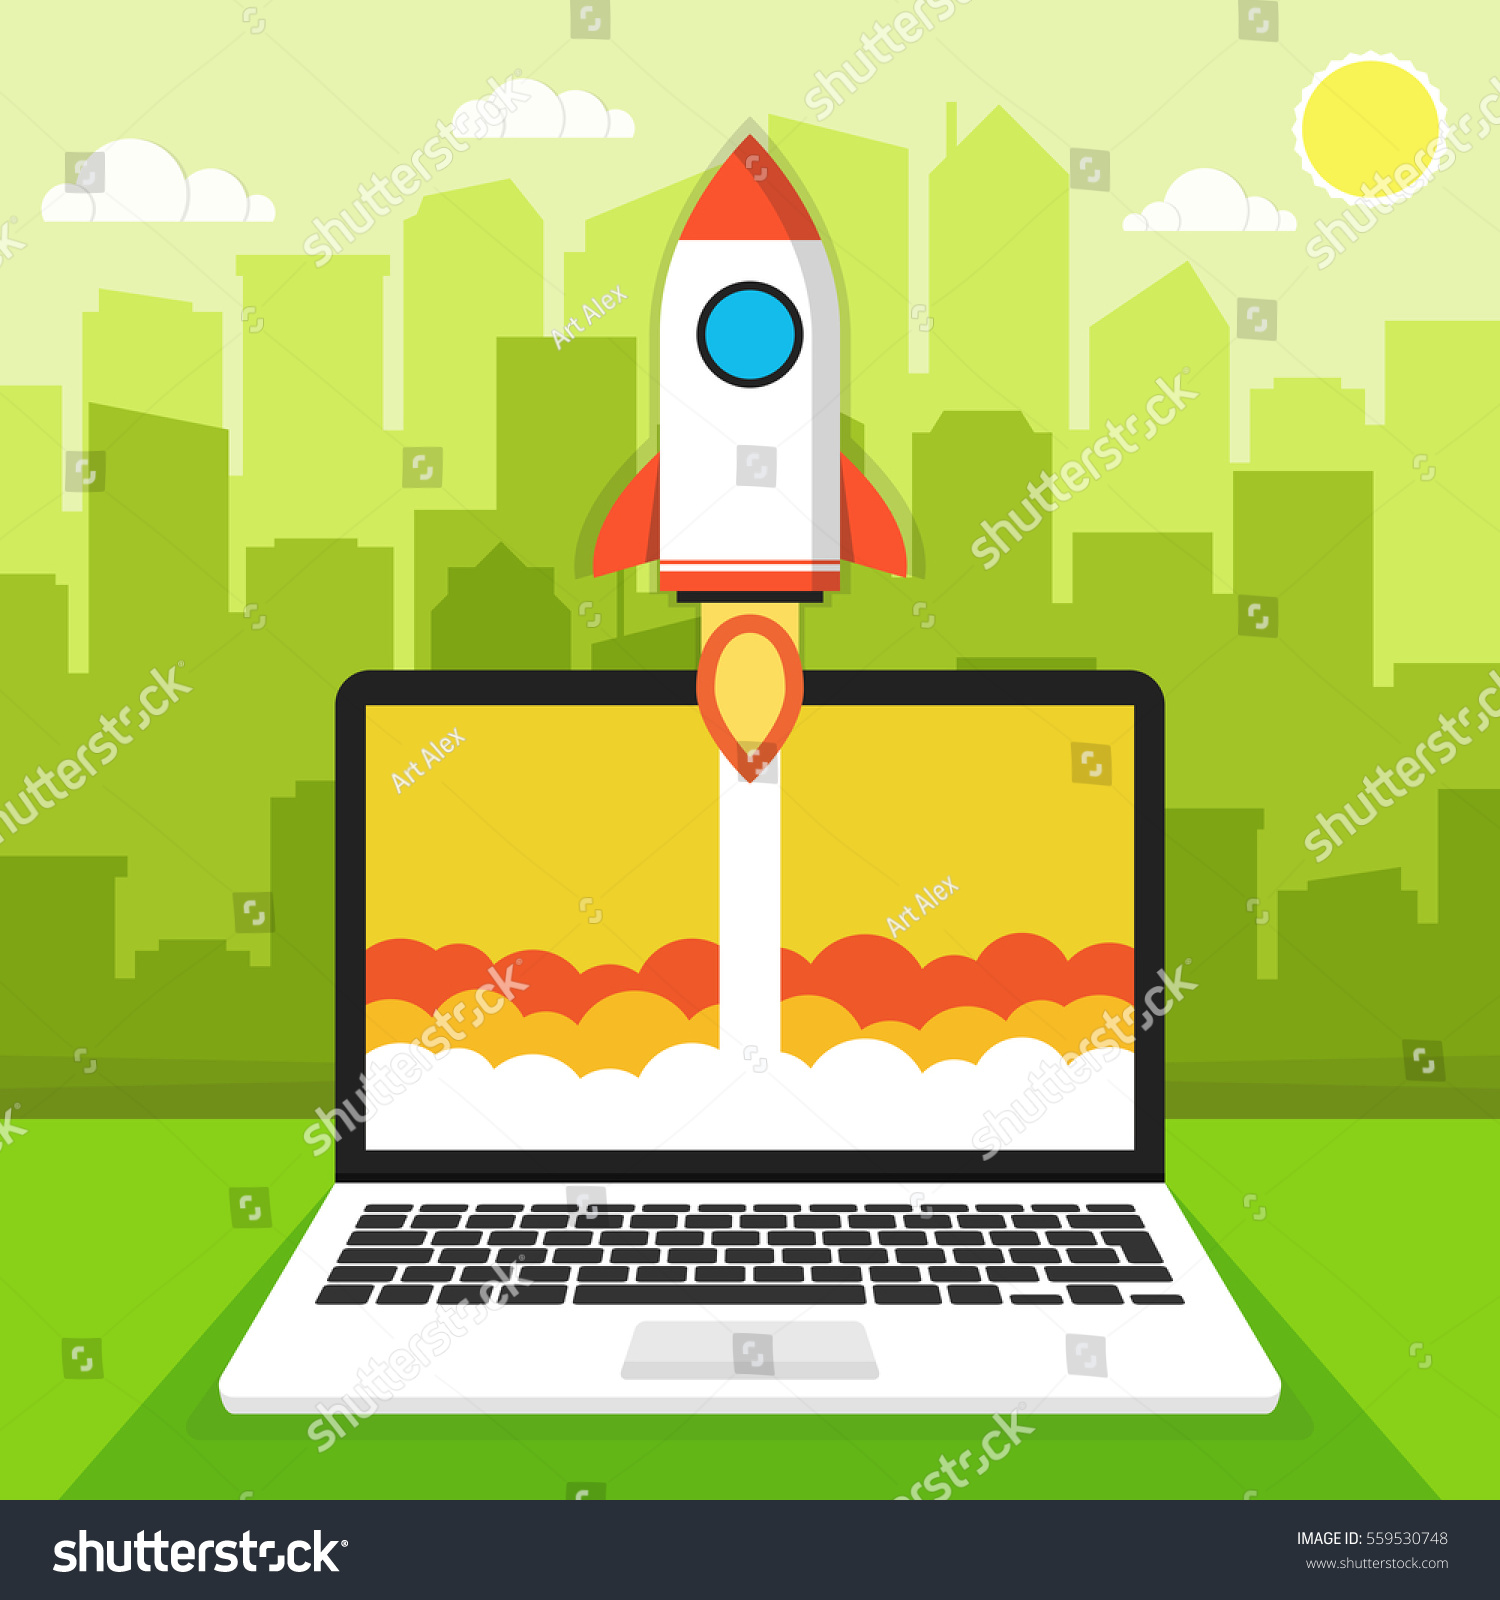 Successful Startup Business Concept Flat Vector Stock Vector